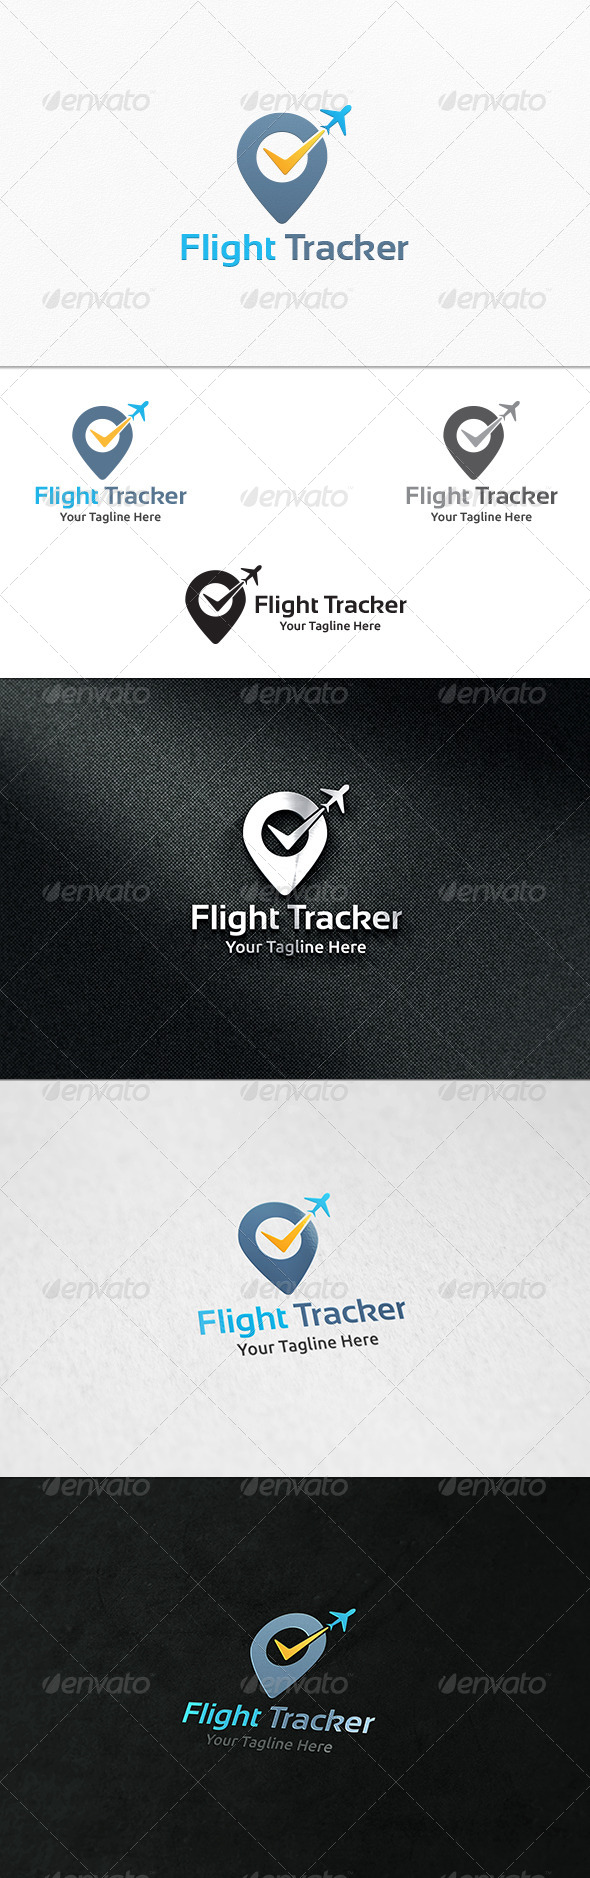 Flight Tracker Logo Template